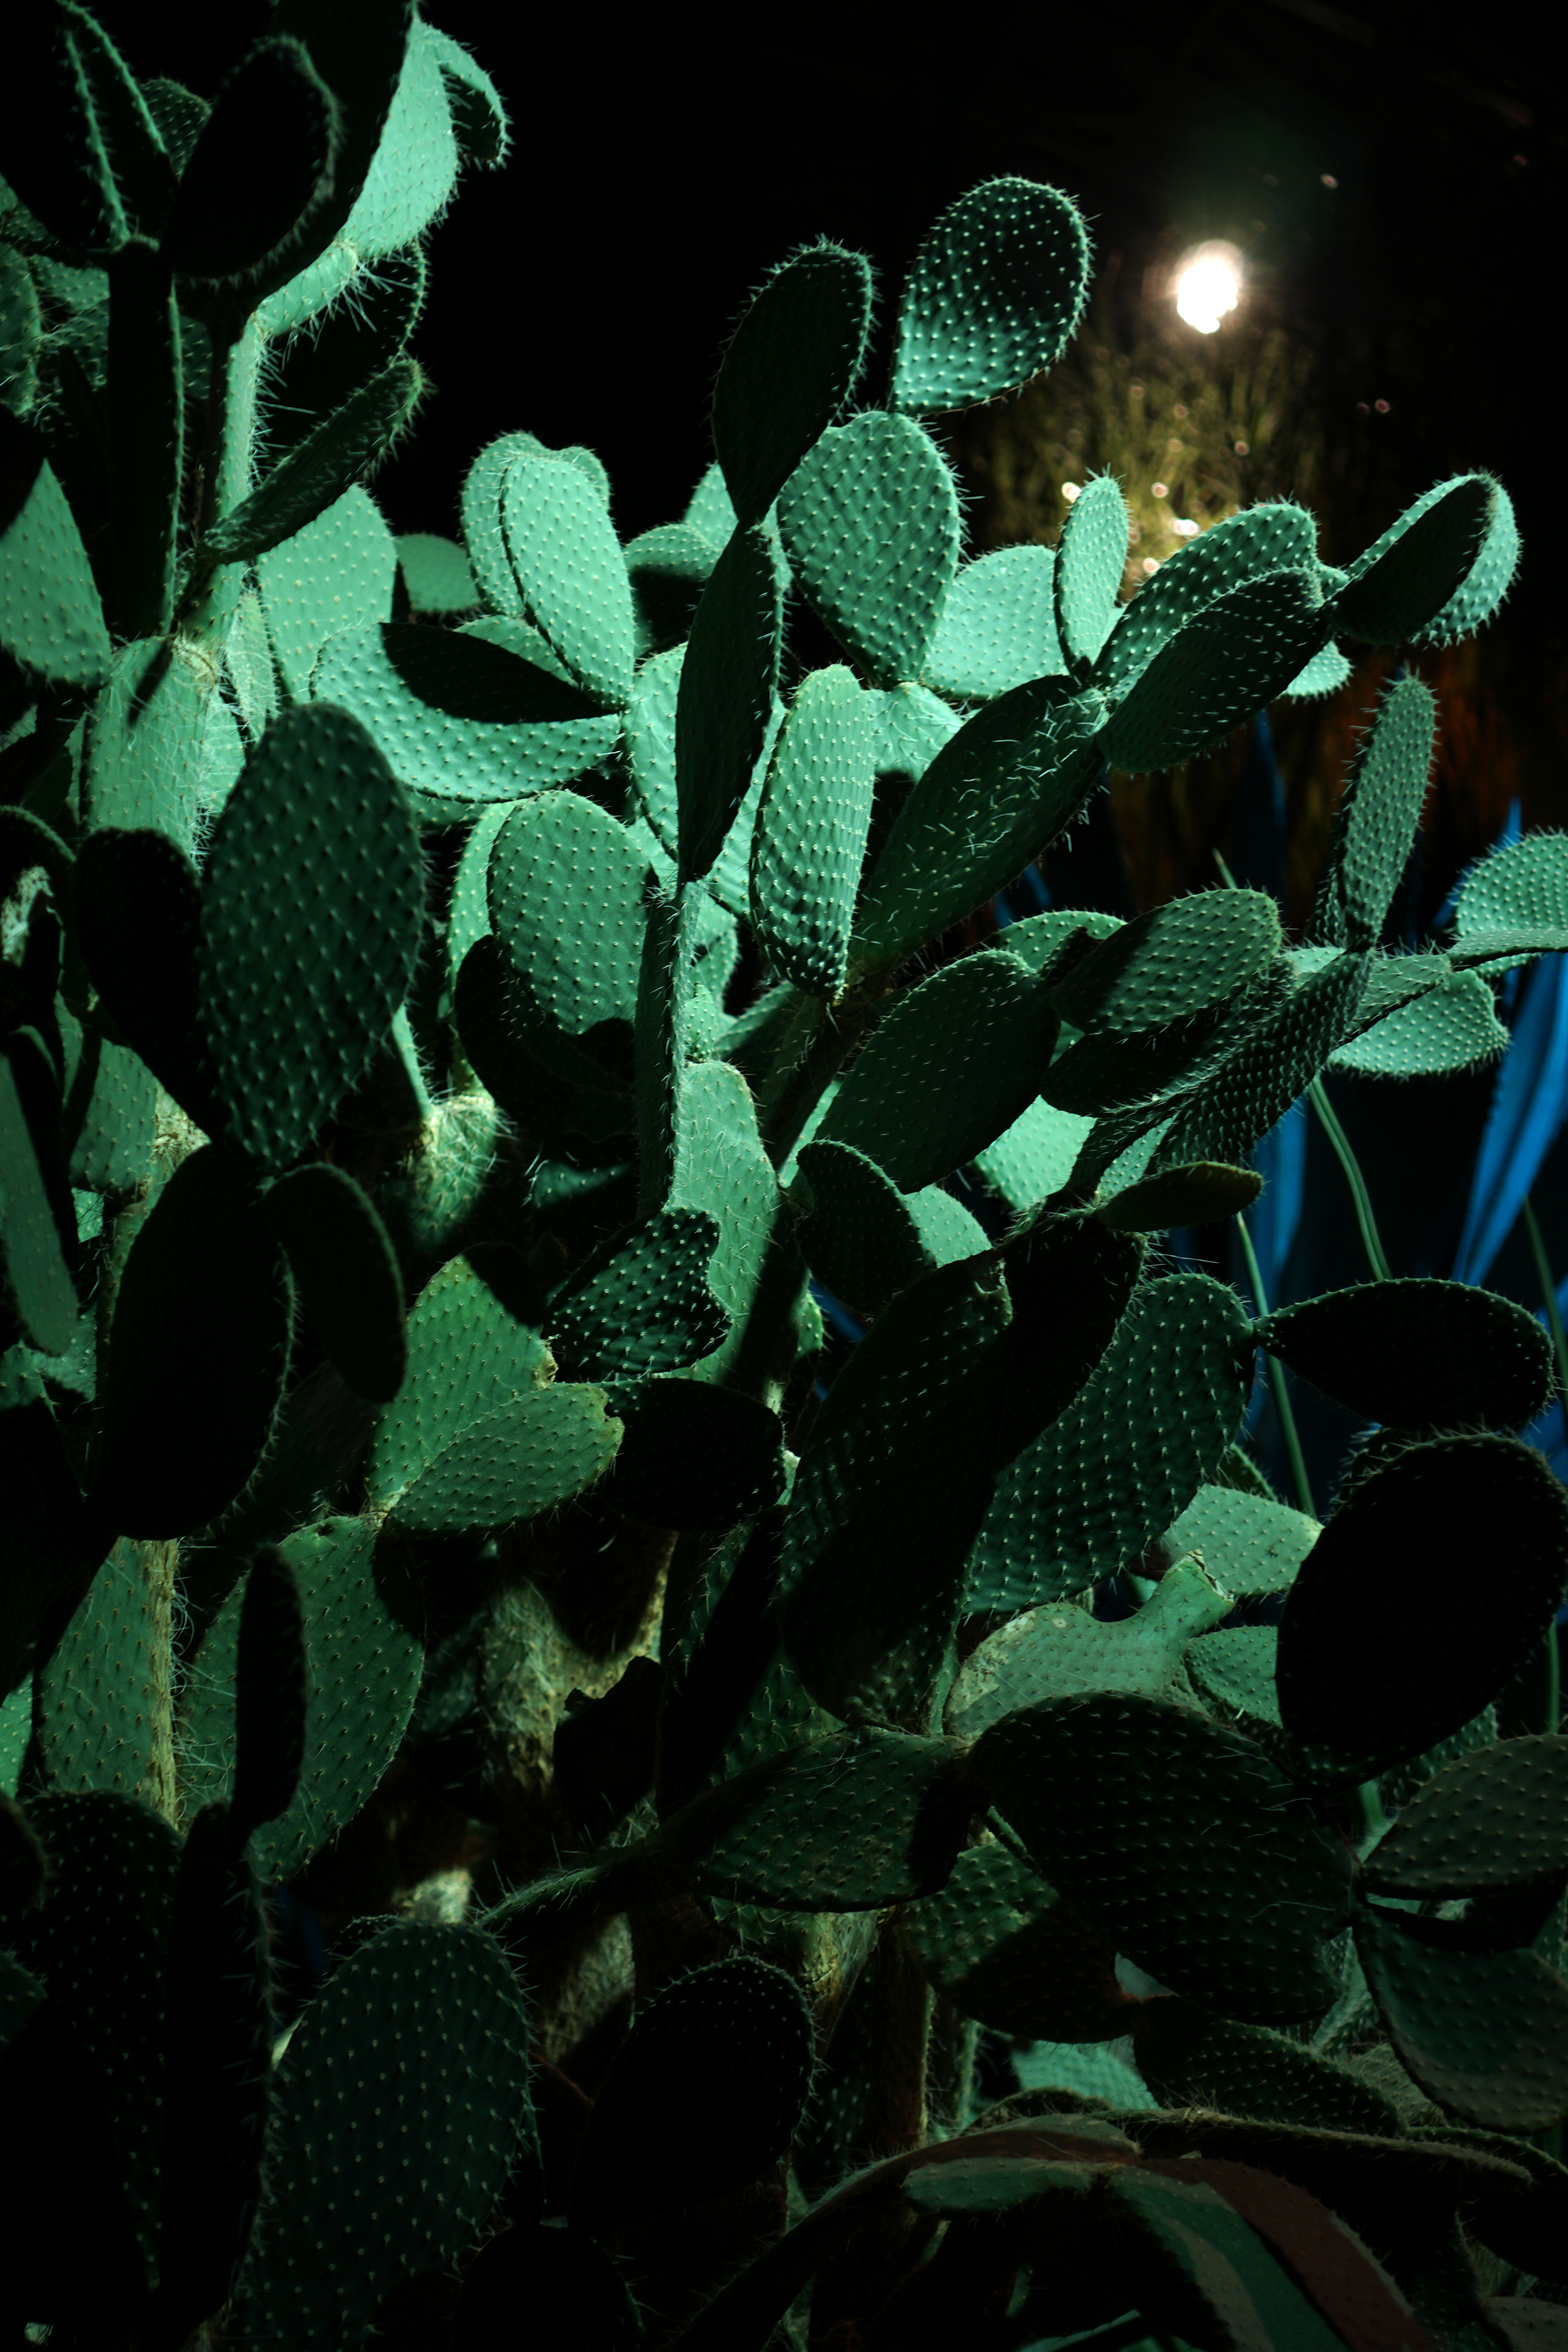 Cactus in the desert room, Garfield Park Conservatory at night, Chicago / Darker than Green